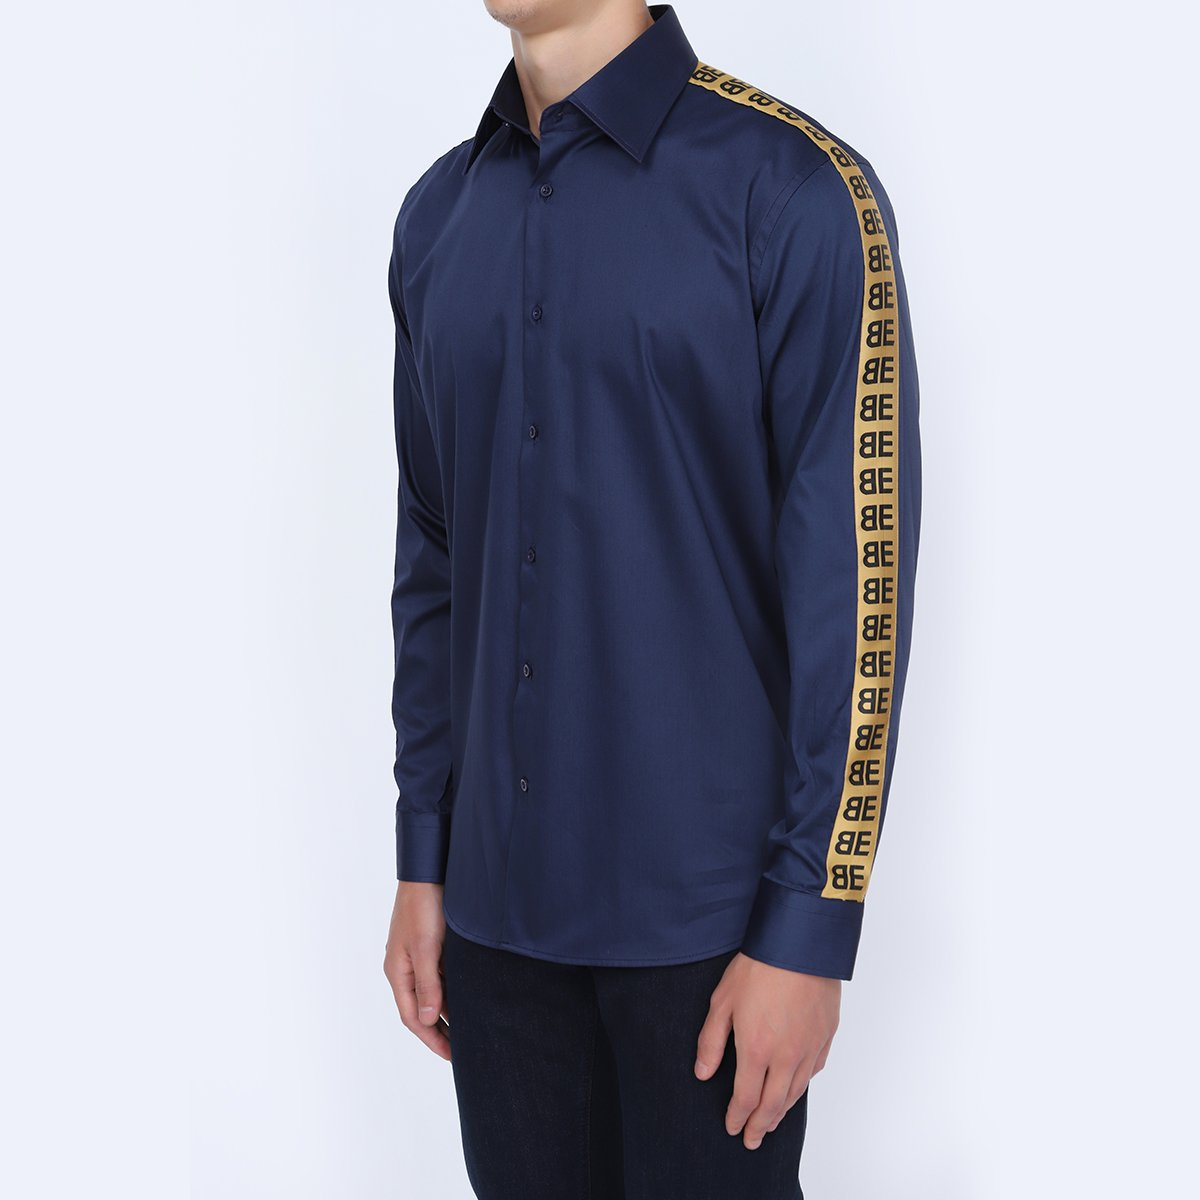 Men's Party Wear Navy Blue Shirt